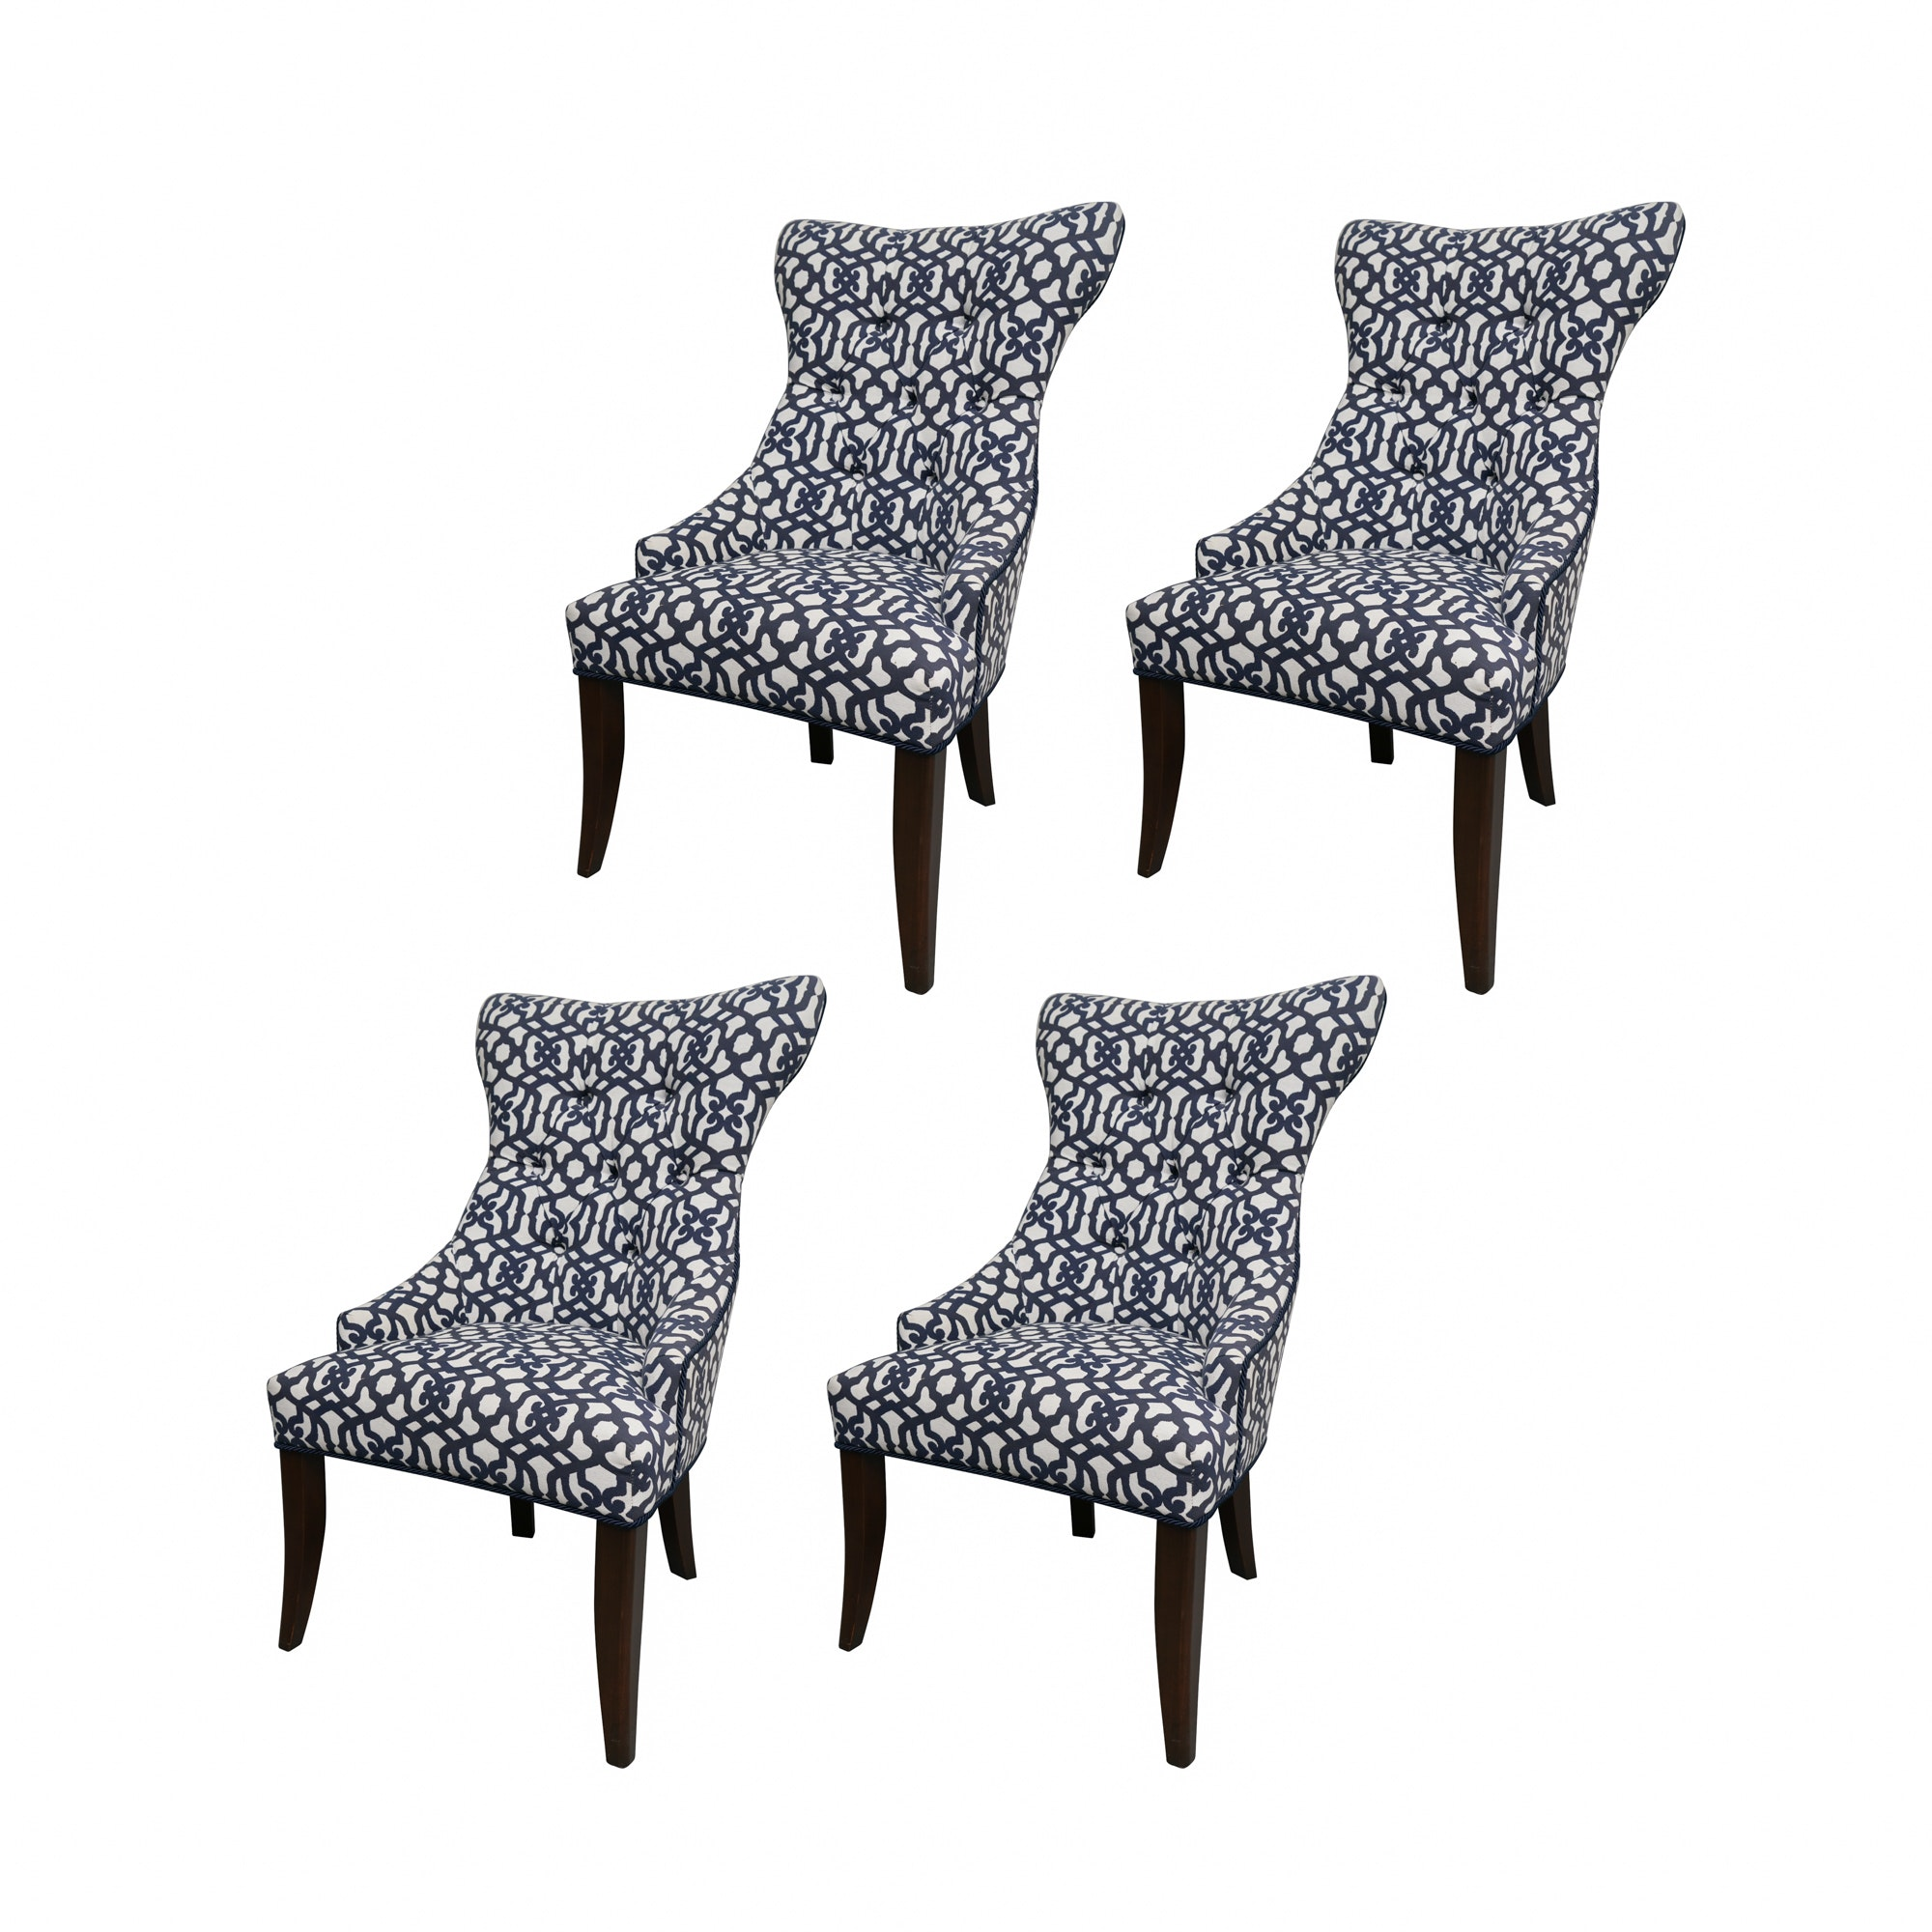 White and Blue Geometric Pattern Upholstered Chairs